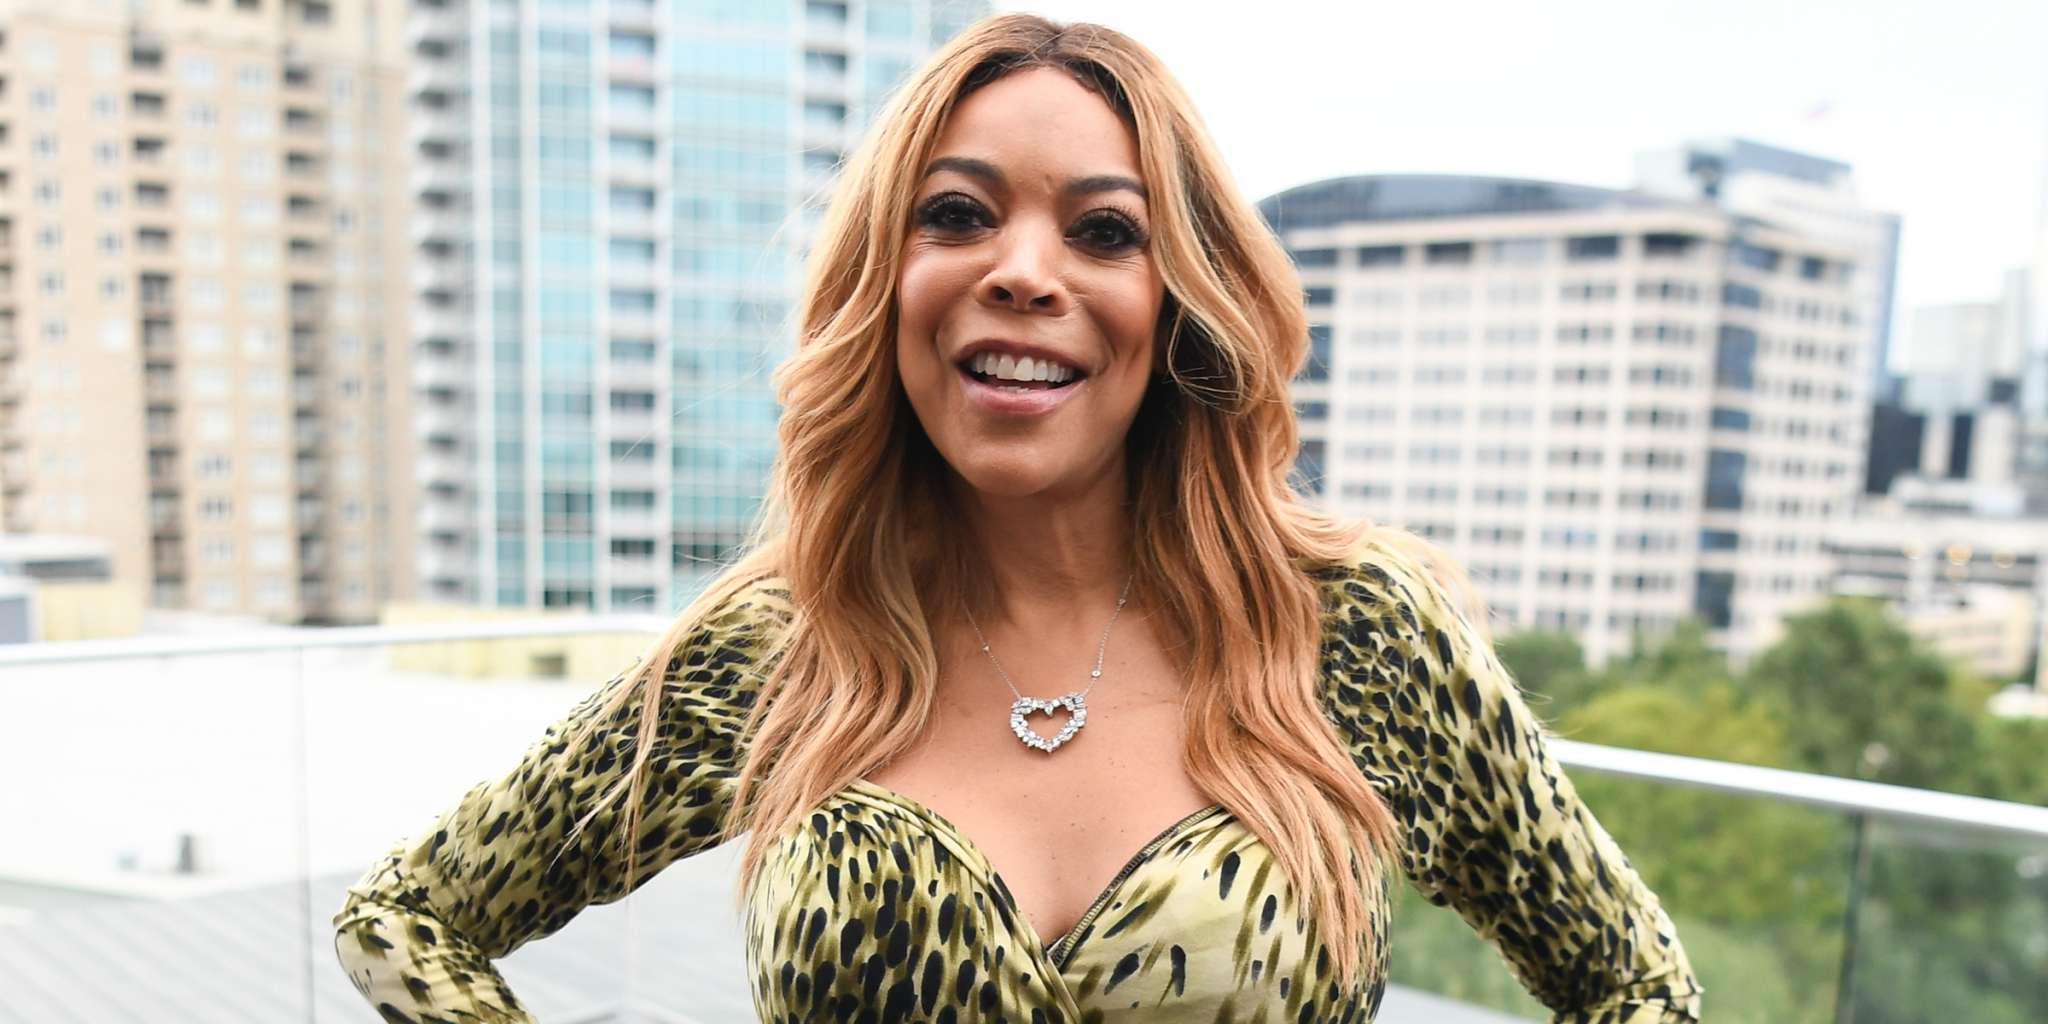 Wendy Williams Slams Rumors She's 'Frail And Lonely' - See What She Has To Say